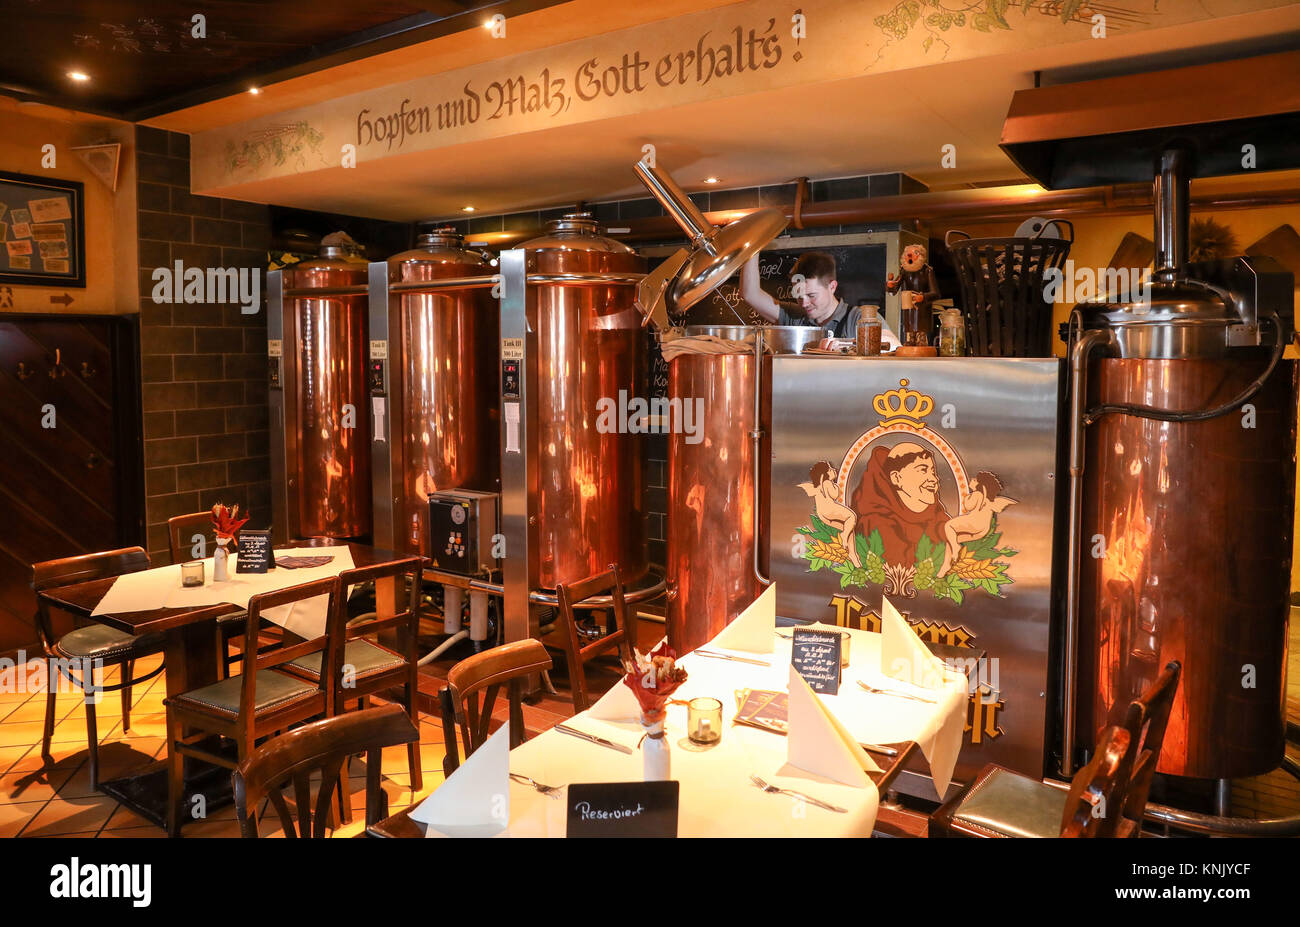 Blauer Engel Restaurant Aue Germany 16th Nov 2017 Brewing Master Willi Wallstab Stands